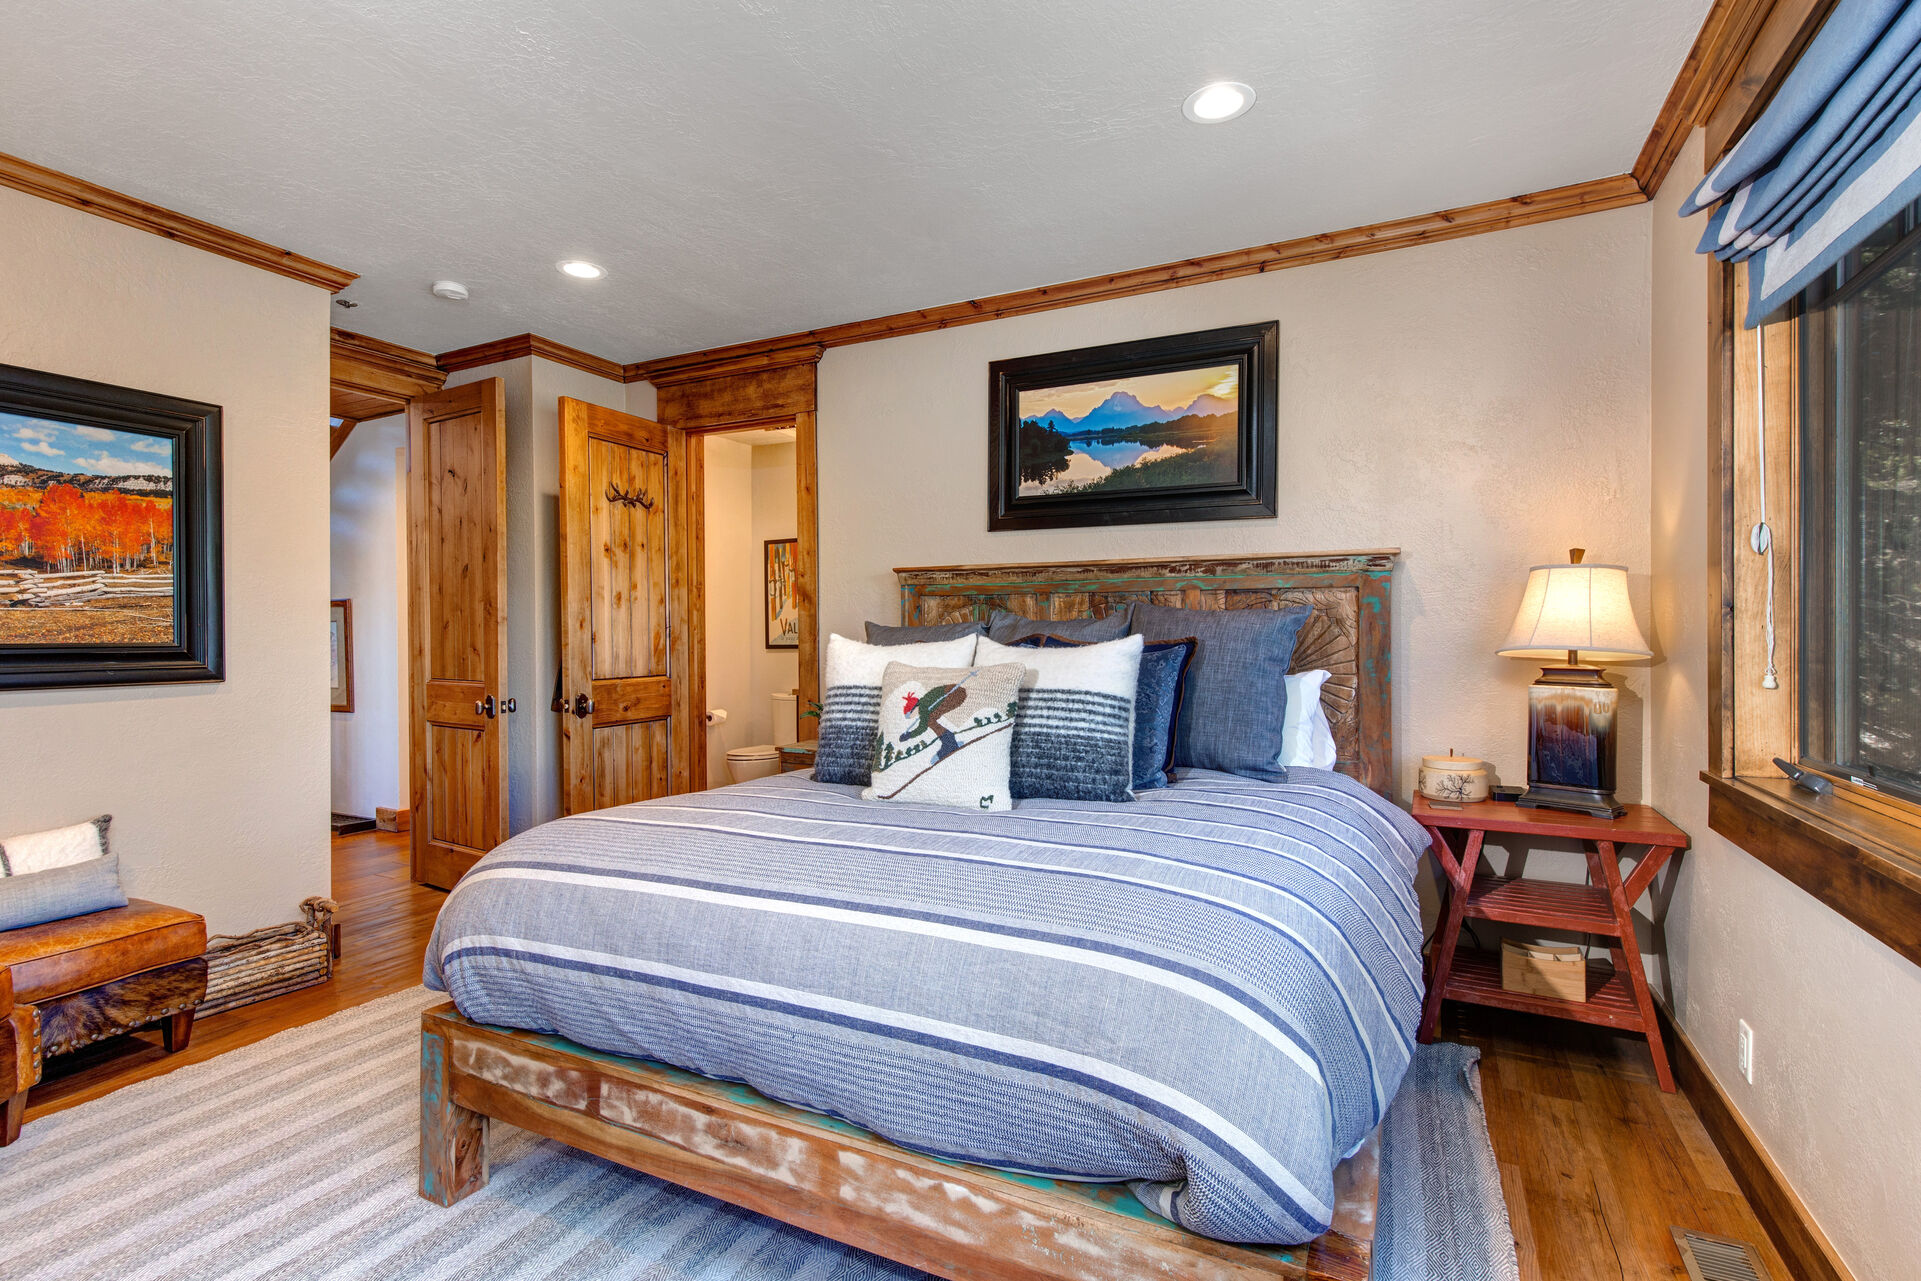 Master Bedroom 3 with Private Access to a Full Shared Bath